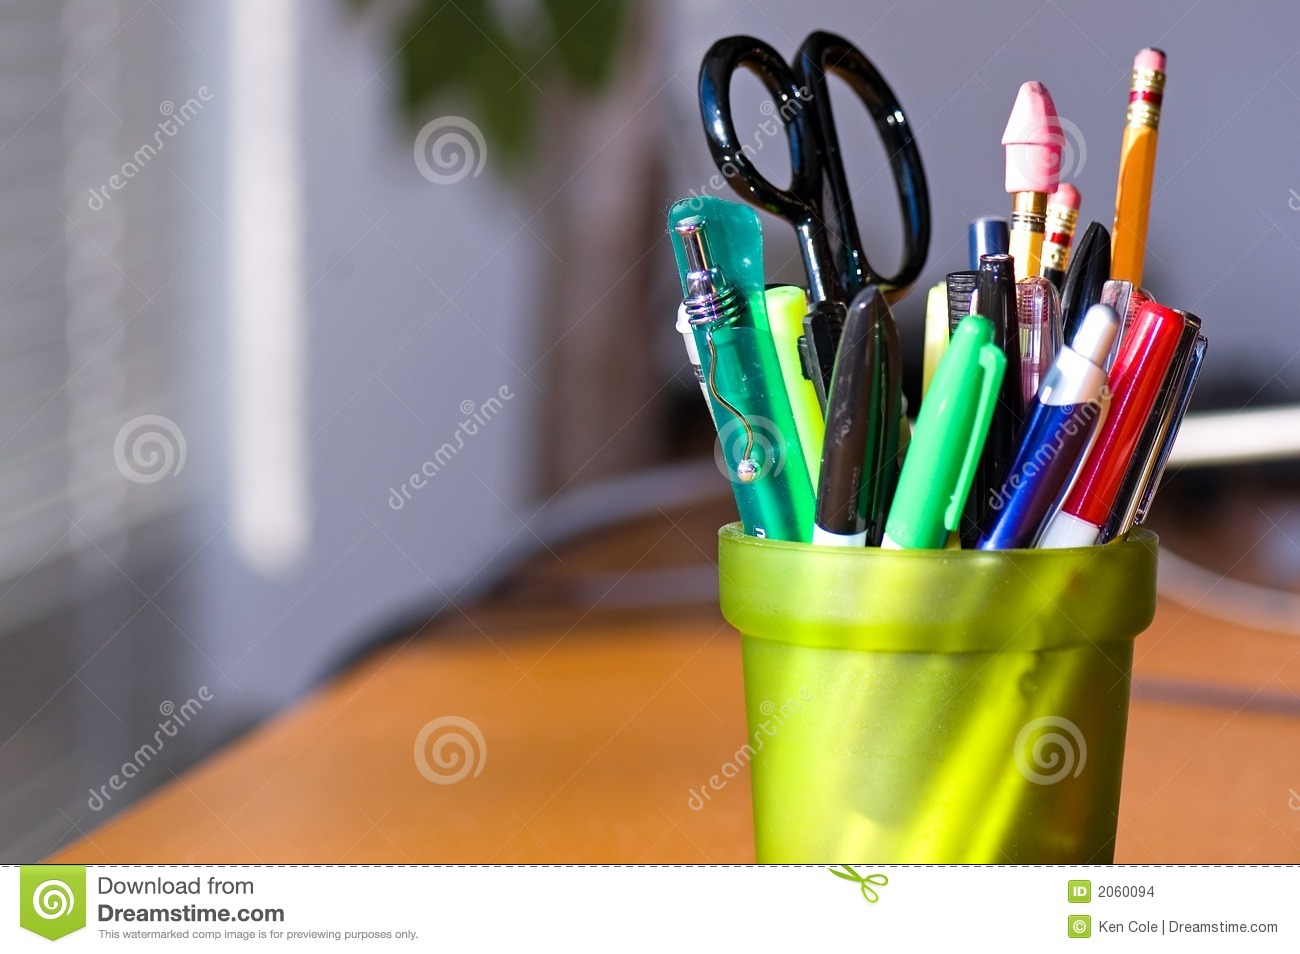 Pen And Pencil Holder On Desk Stock Images - Image: 2060094